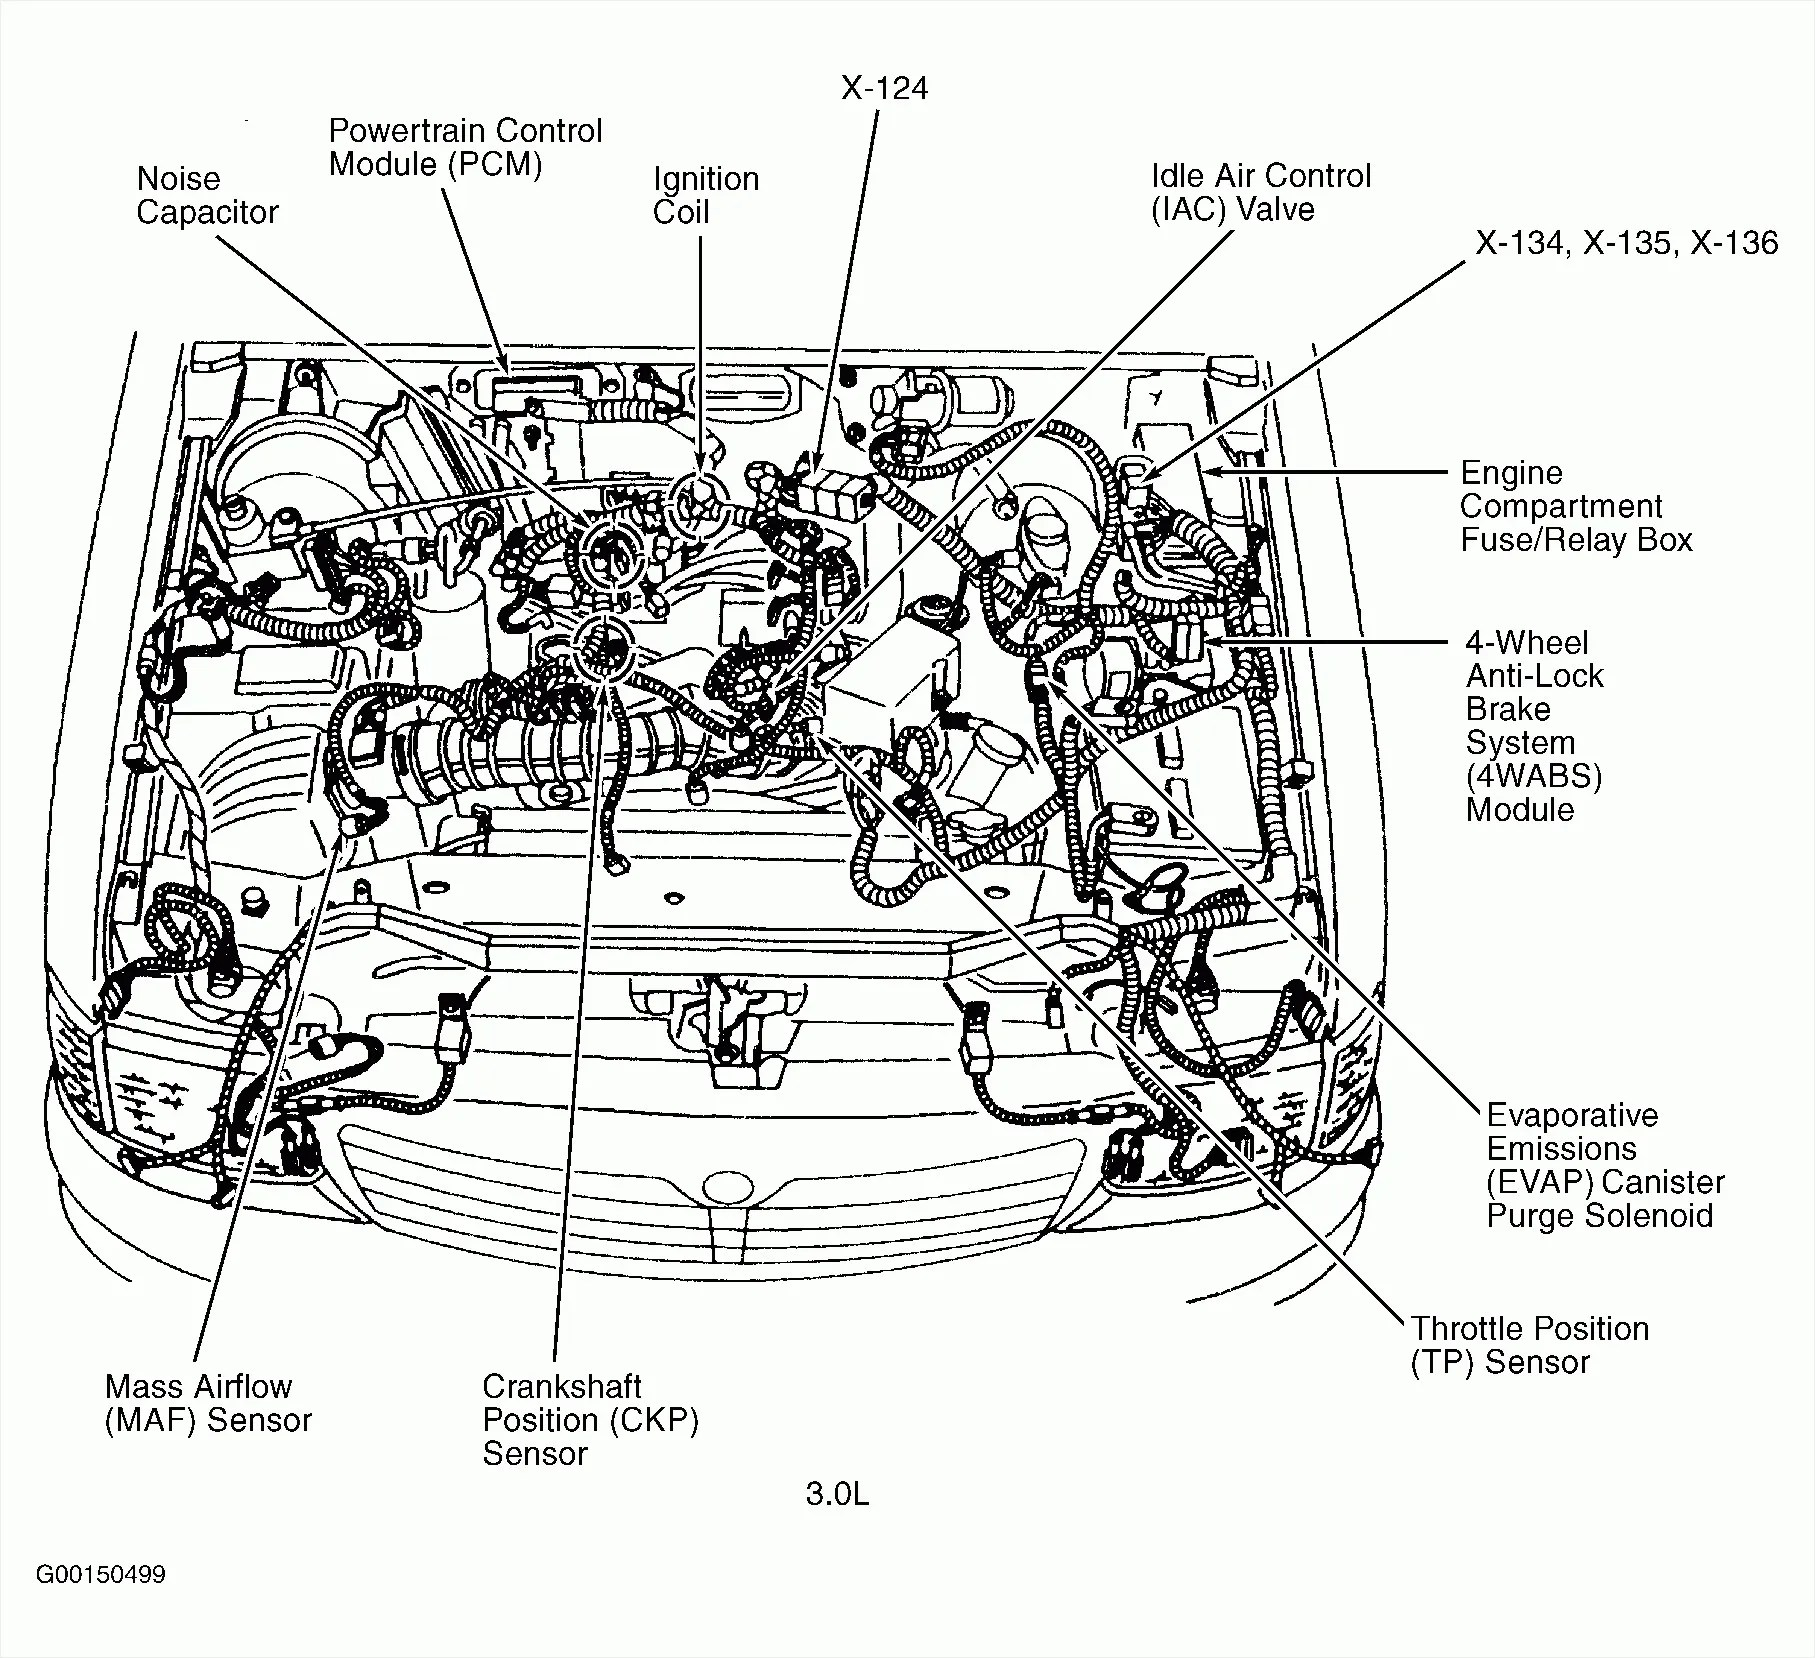 hight resolution of 2004 mazda 6 v6 engine parts wiring diagram database engine diagram mazda 6 2003 egr valve